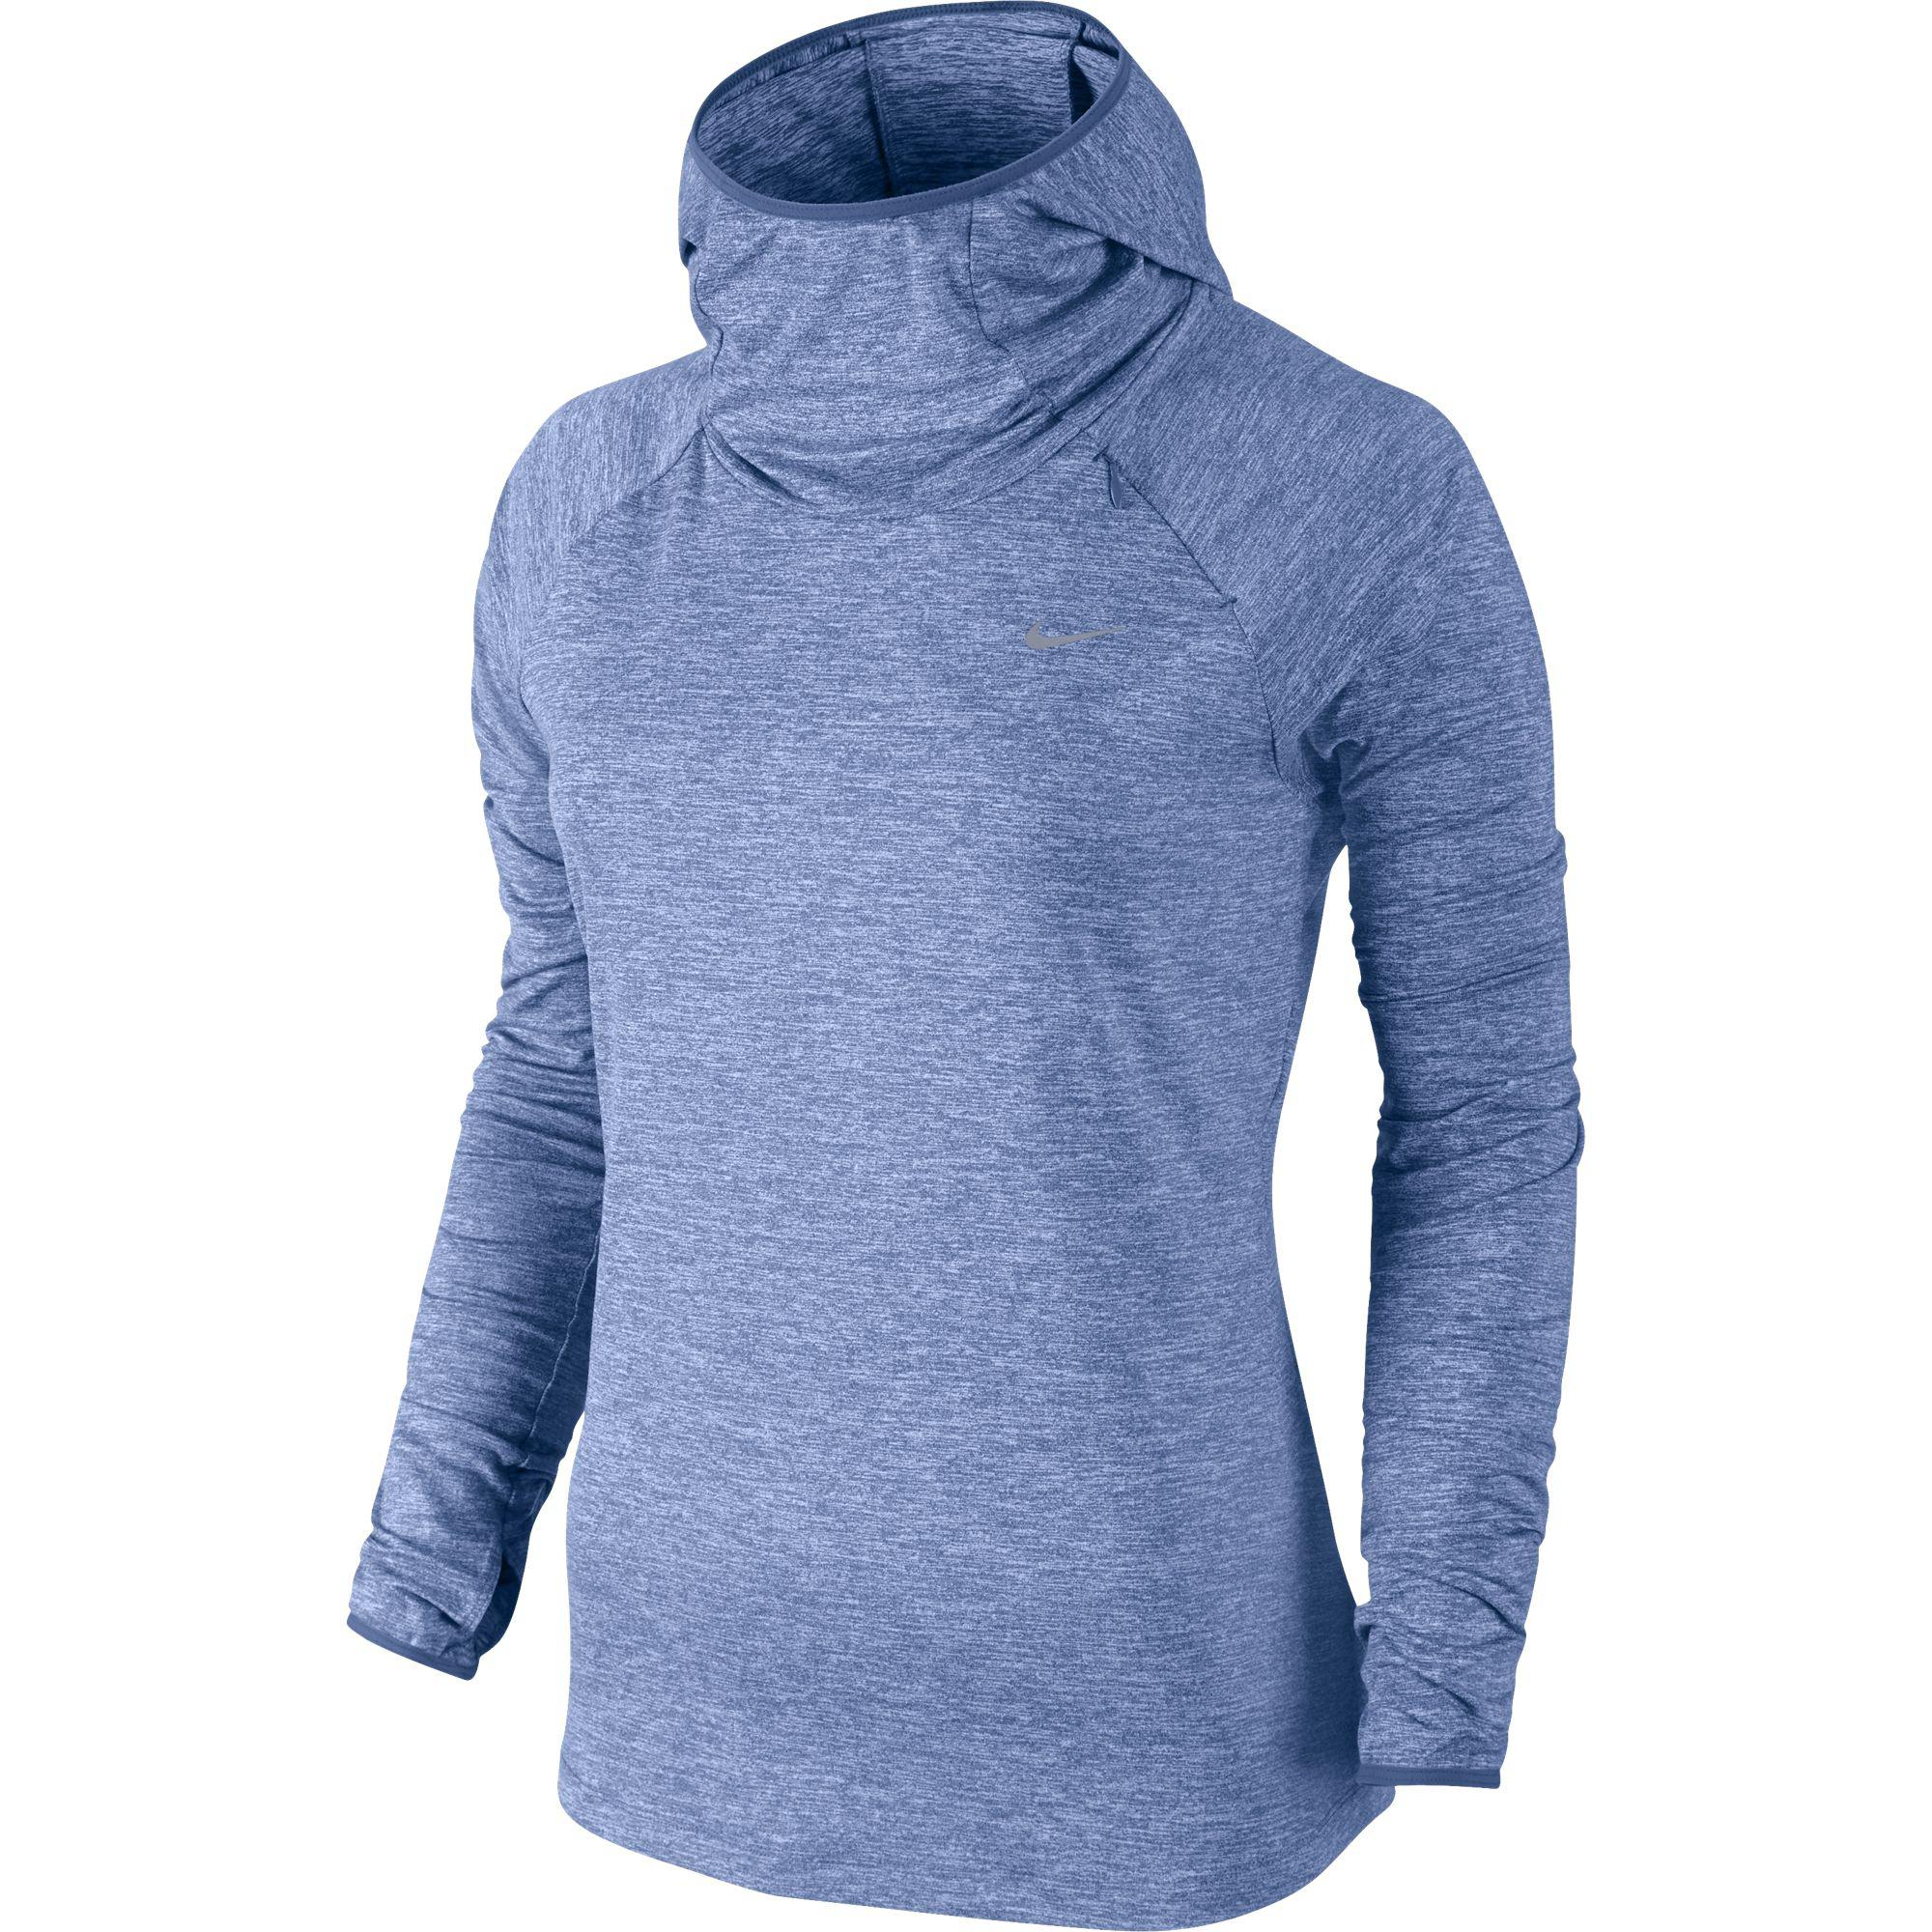 a240511bc9ff6 Nike Womens Dry Element Hoodie - Chalk Blue - Tennisnuts.com